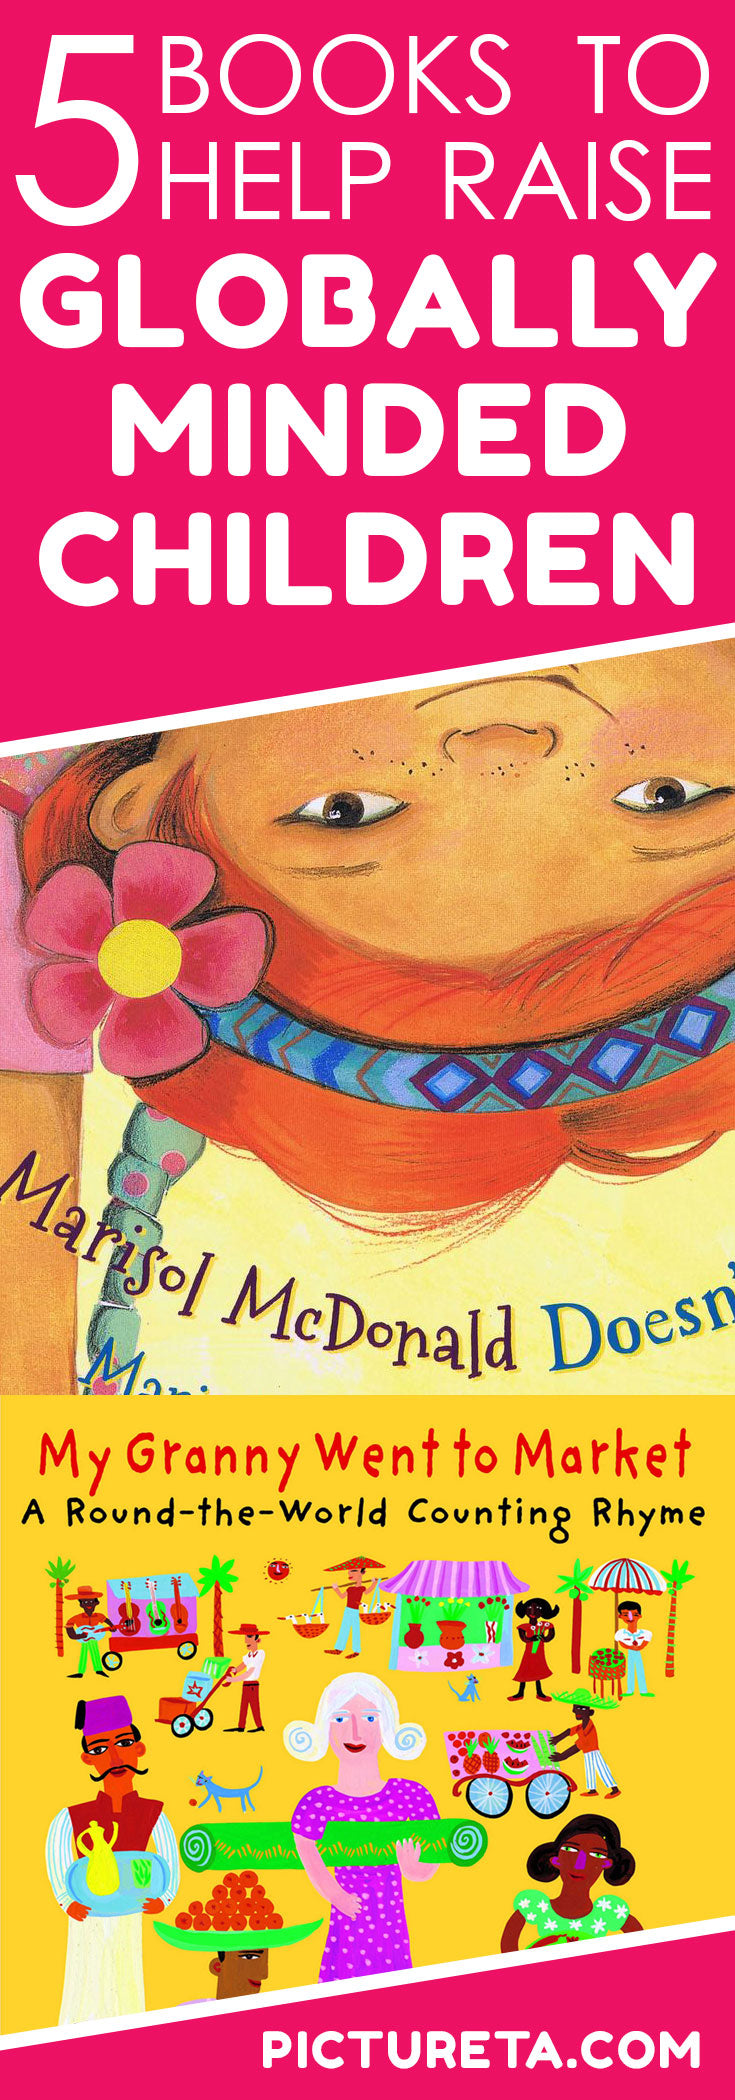 5 Books To Help Raise Globally Minded Children Pictureta